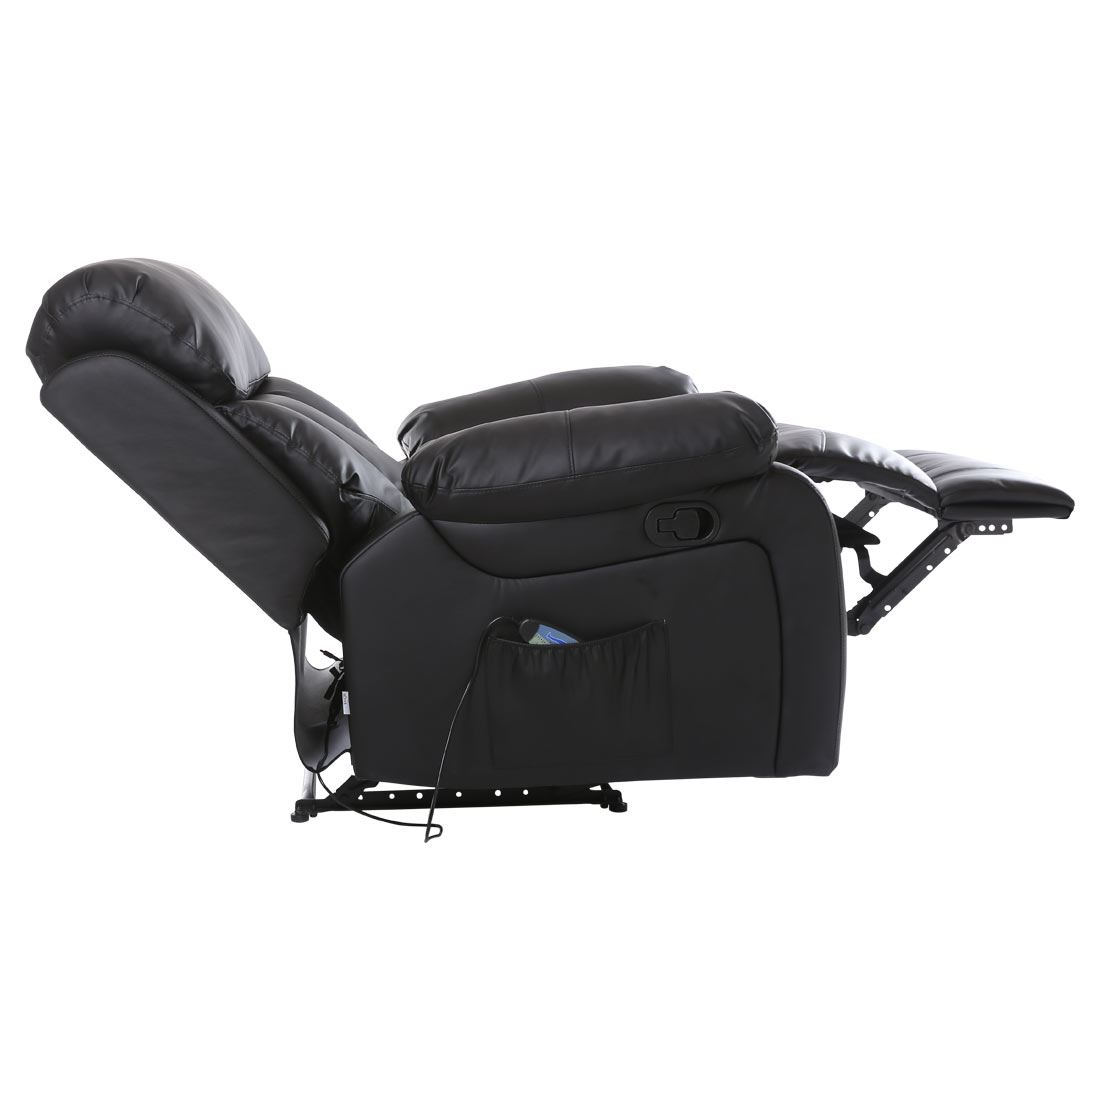 gaming lounge chair dallas cowboys folding chester heated leather massage recliner sofa